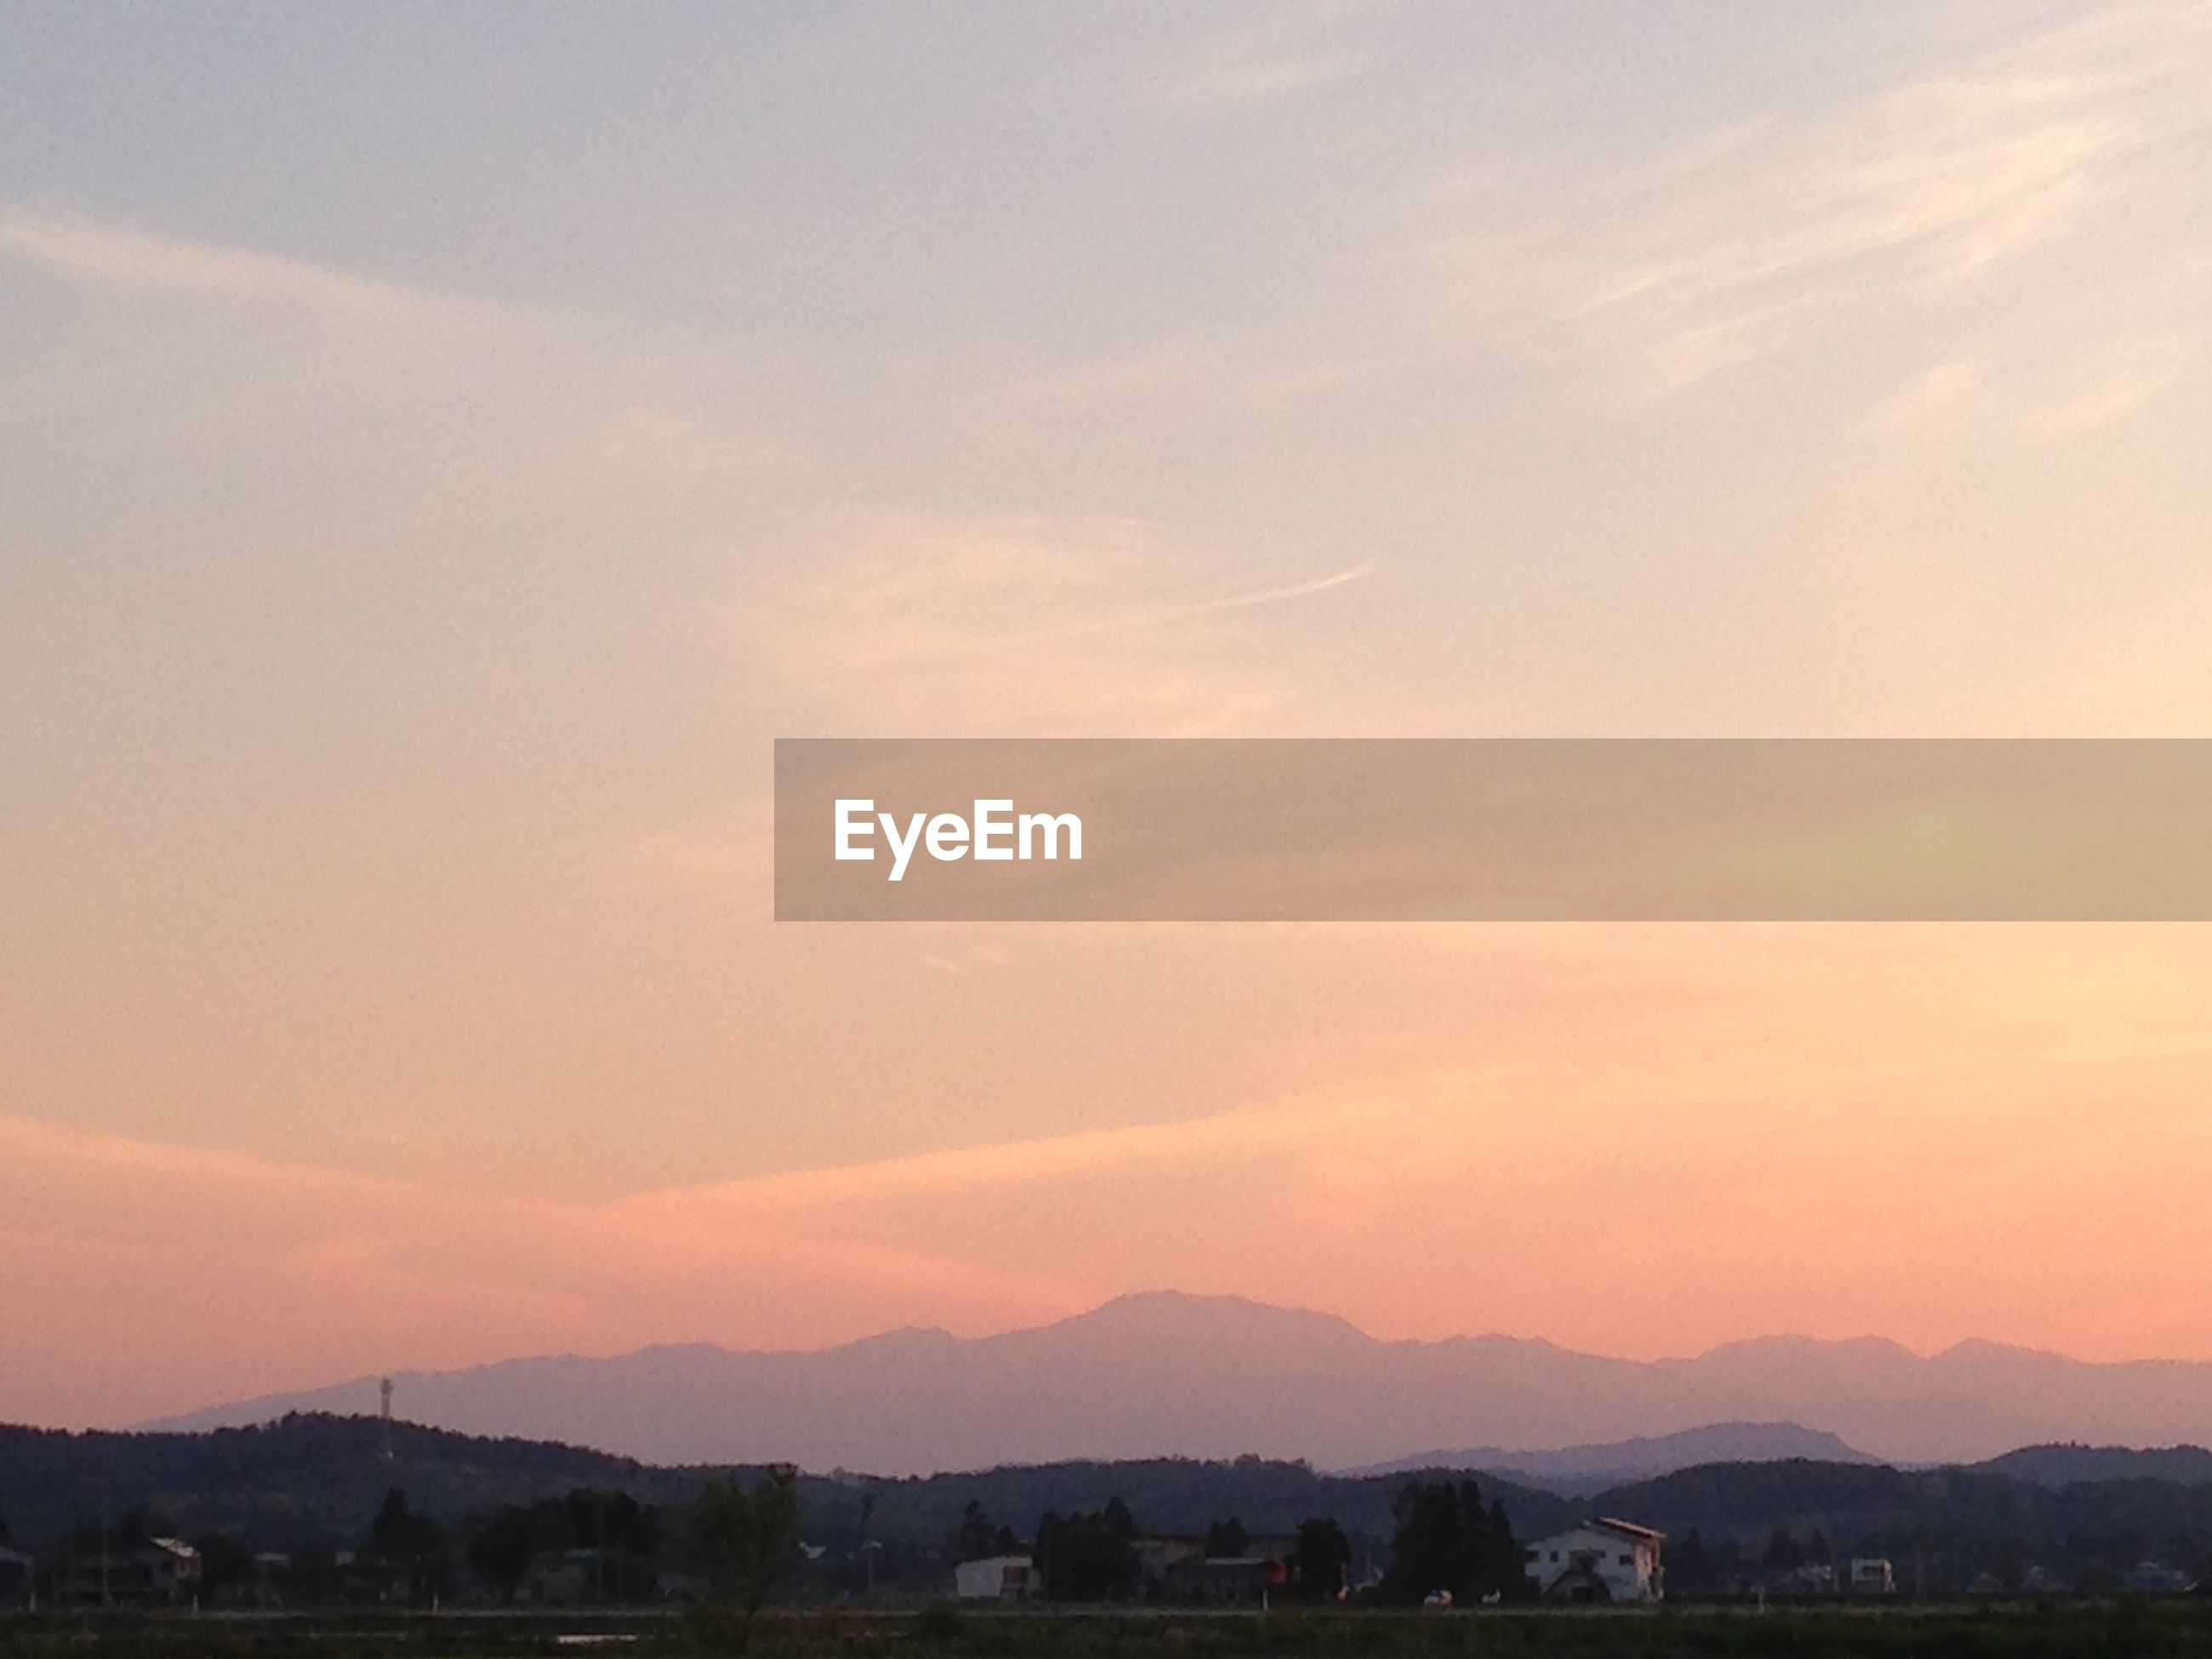 tranquility, scenics, tranquil scene, beauty in nature, sky, nature, cloud - sky, idyllic, sunset, landscape, outdoors, no people, non-urban scene, cloud, aerial view, majestic, cloudscape, backgrounds, day, low angle view